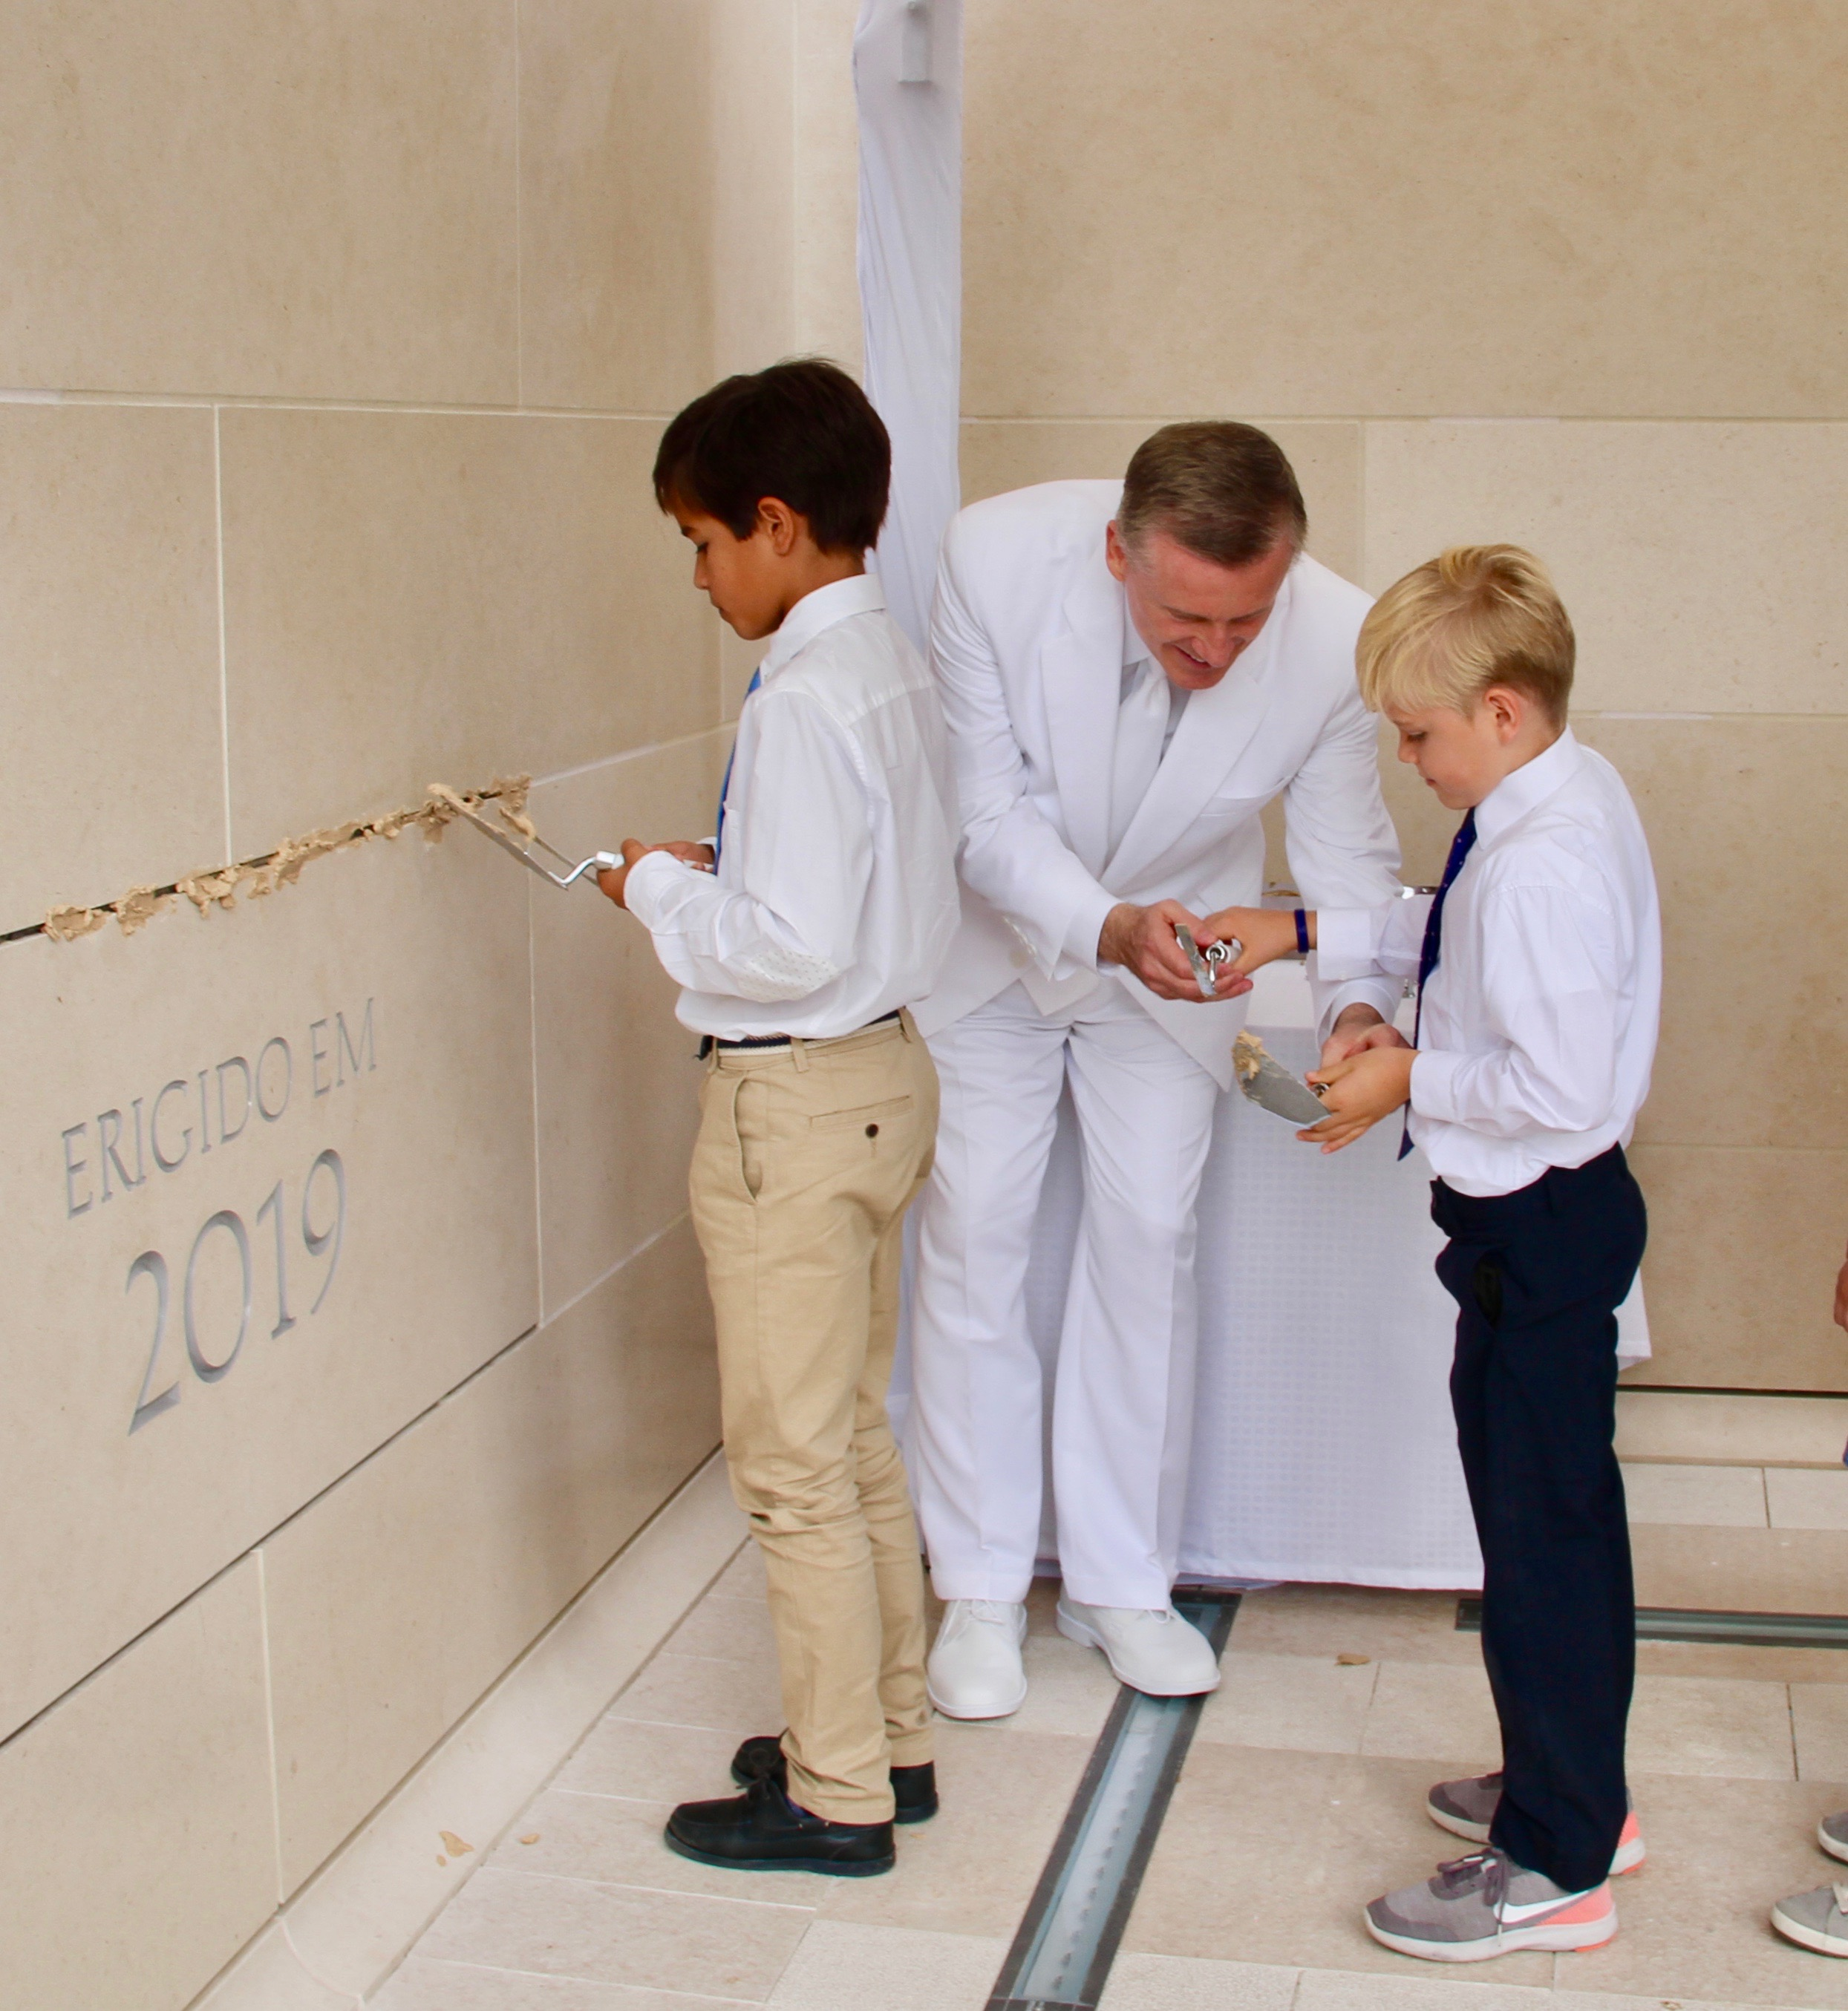 Elder Kevin R. Duncan helps young boys who were invited to participate in the cornerstone ceremony of the Lisbon Portugal Temple dedication on Sunday, Sept. 15, 2019.